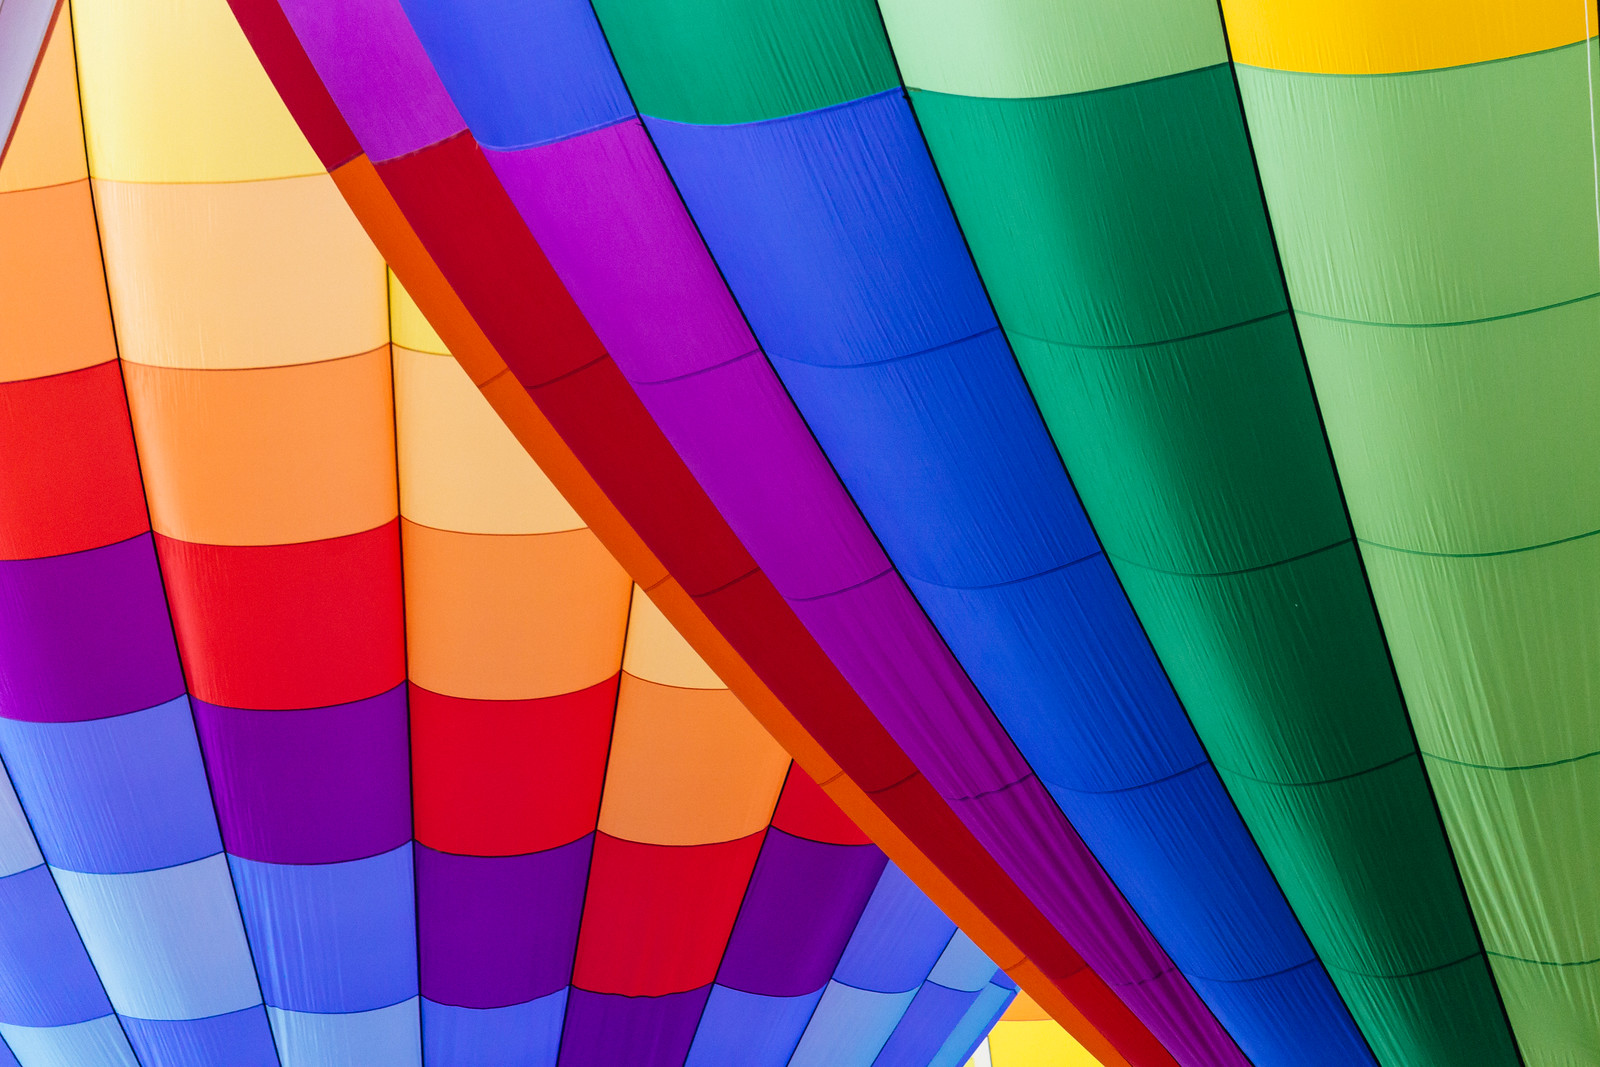 Rainbow-colored hot-air balloons at the Albuquerque International Balloon Fiesta